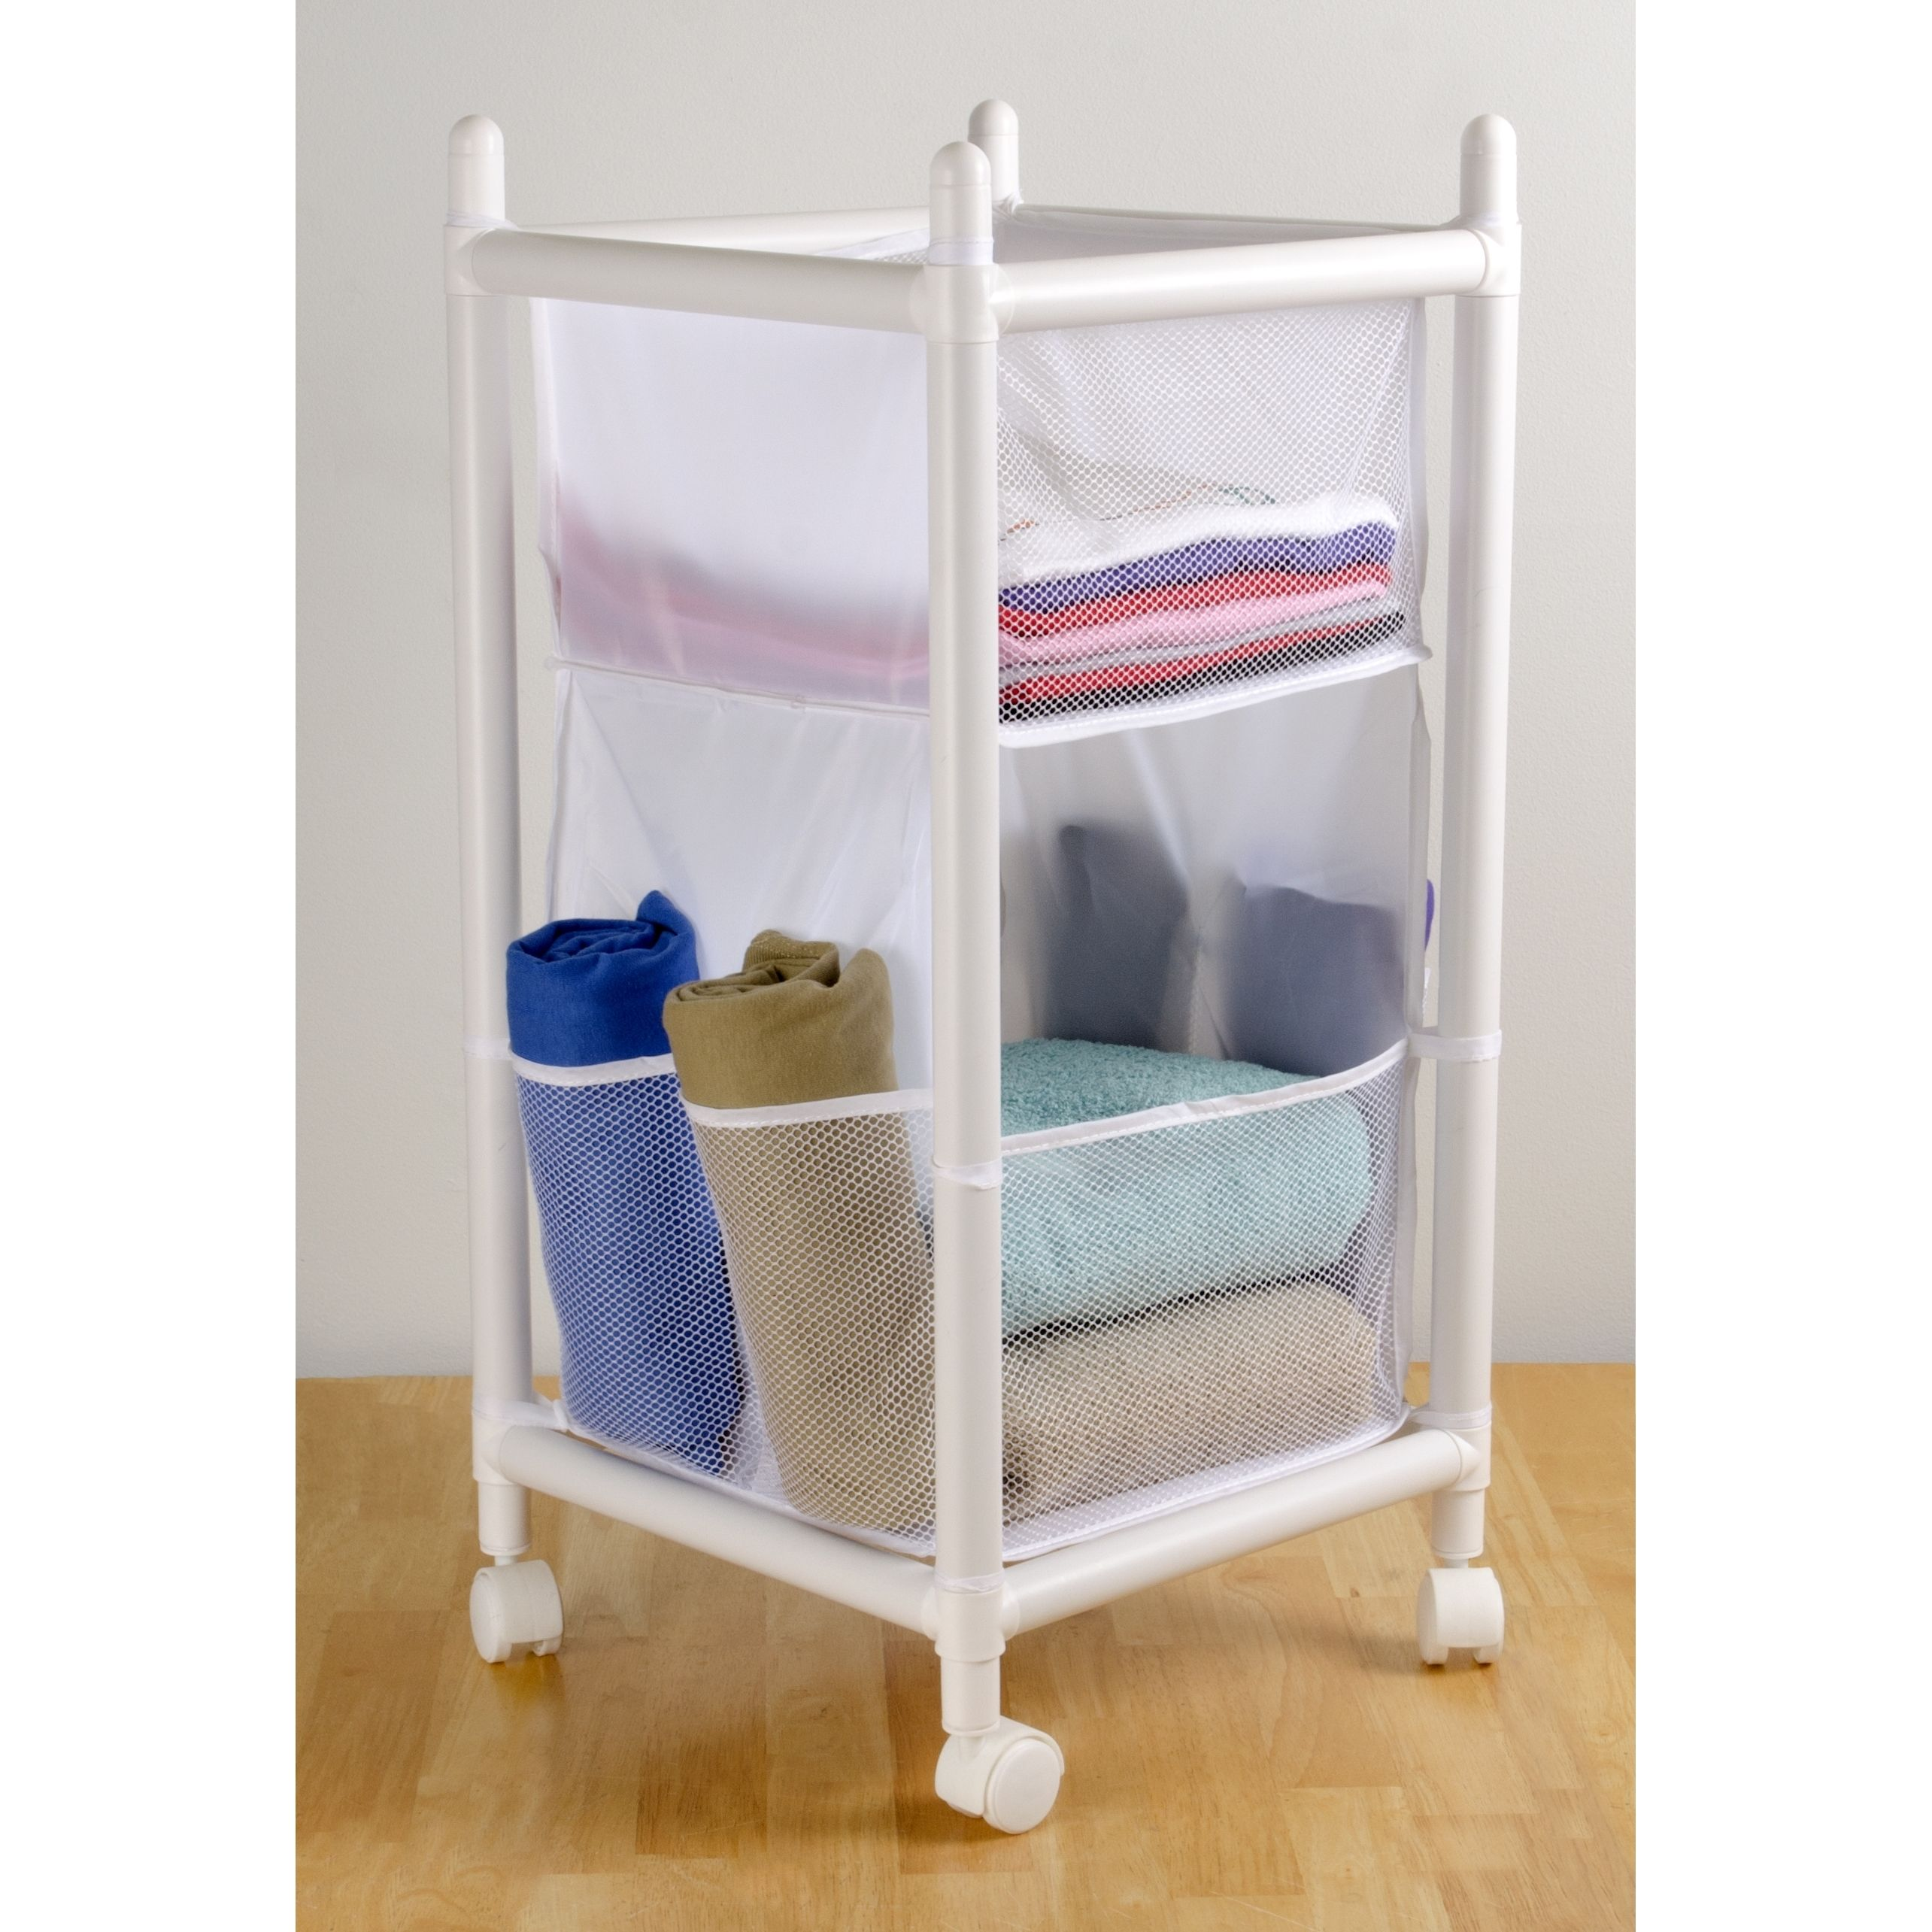 Organize your space in style with this laundry and storage unit